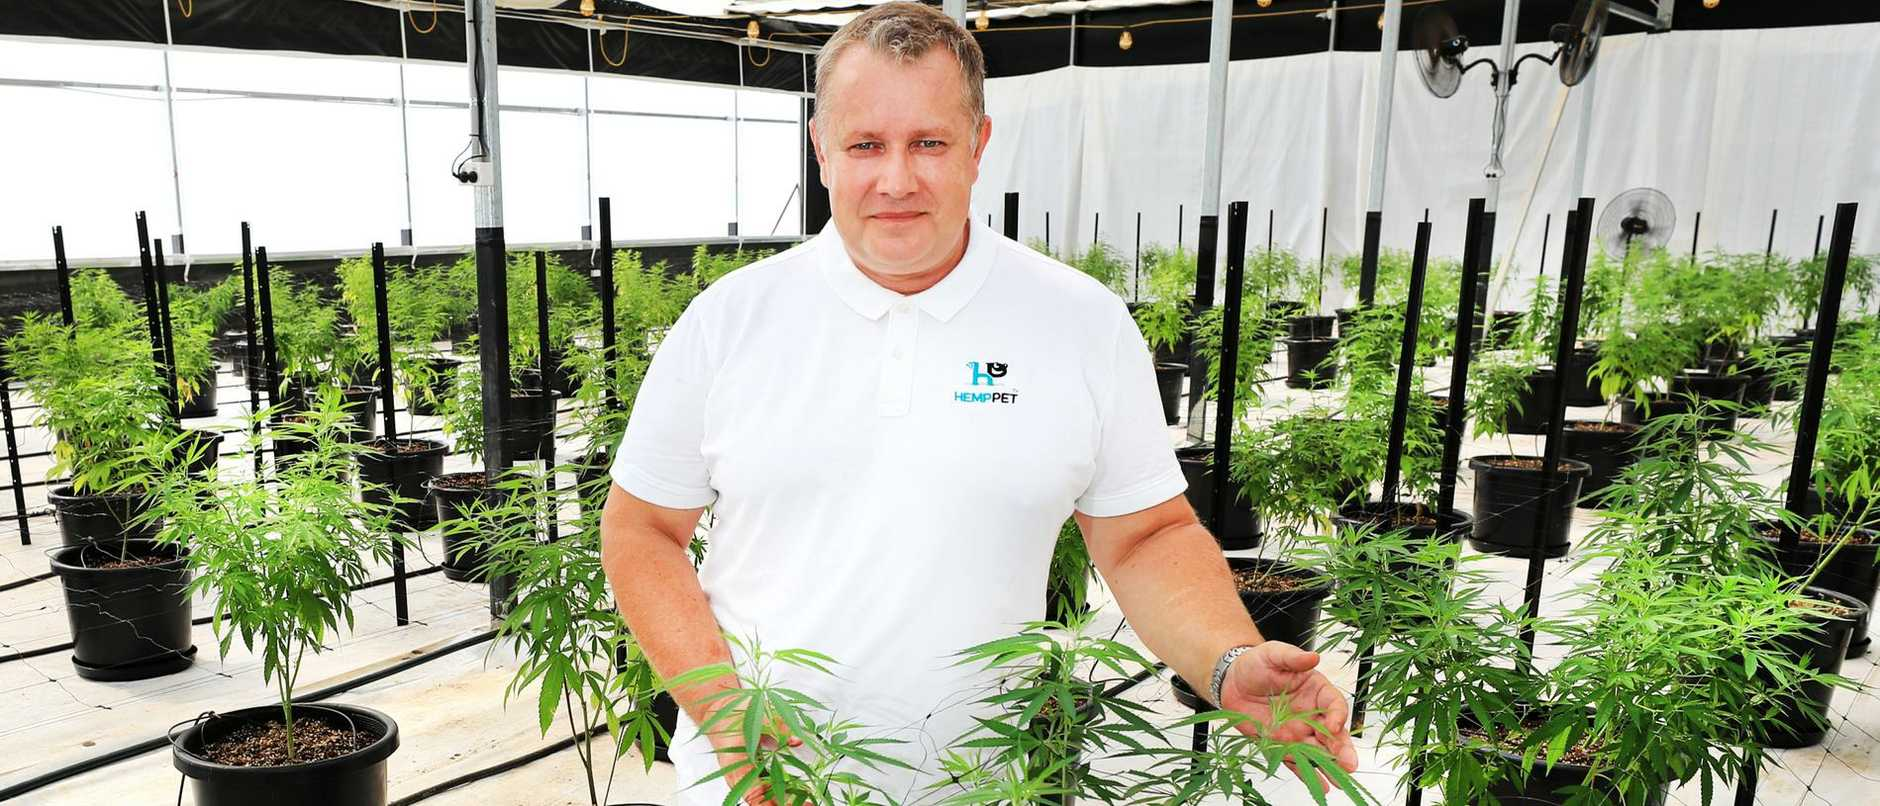 Hemp Field's co-owner ­Arthur Ways, an ex-mortgage broker, had wanted to exhibit plants from the start-up operation – just south of the city's Queensland/NSW border – at the Hemp Health and Innovation Expo in October.